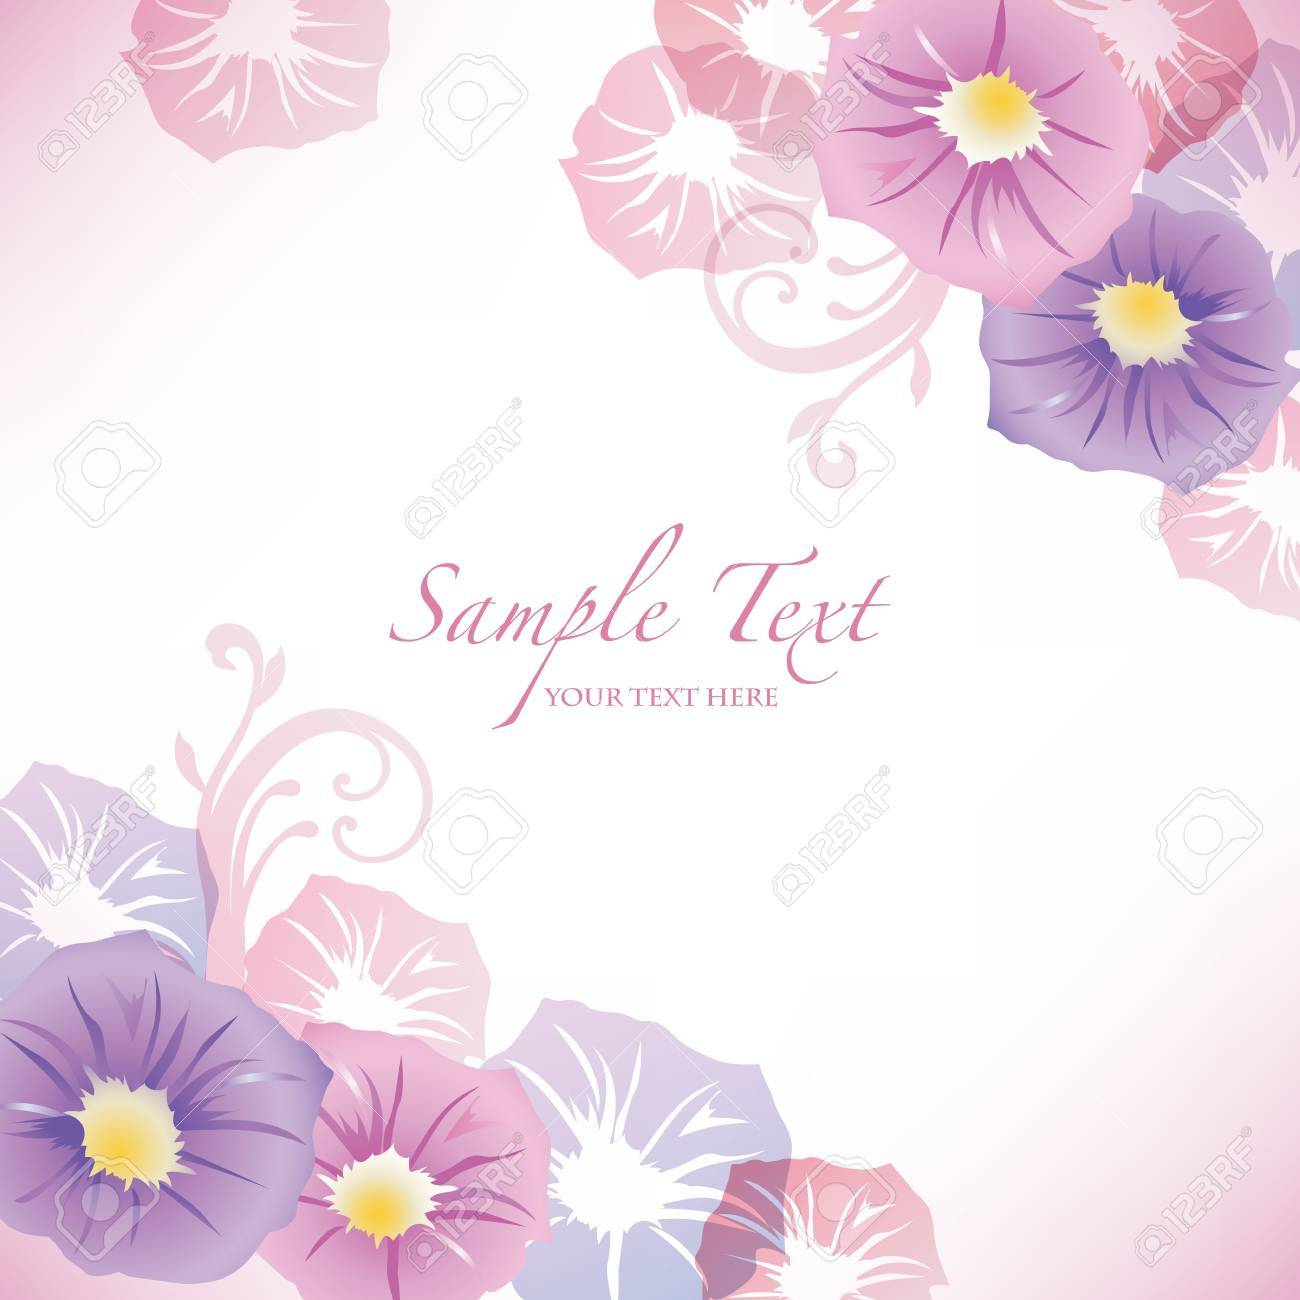 morning glory background Stock Vector - 13171831